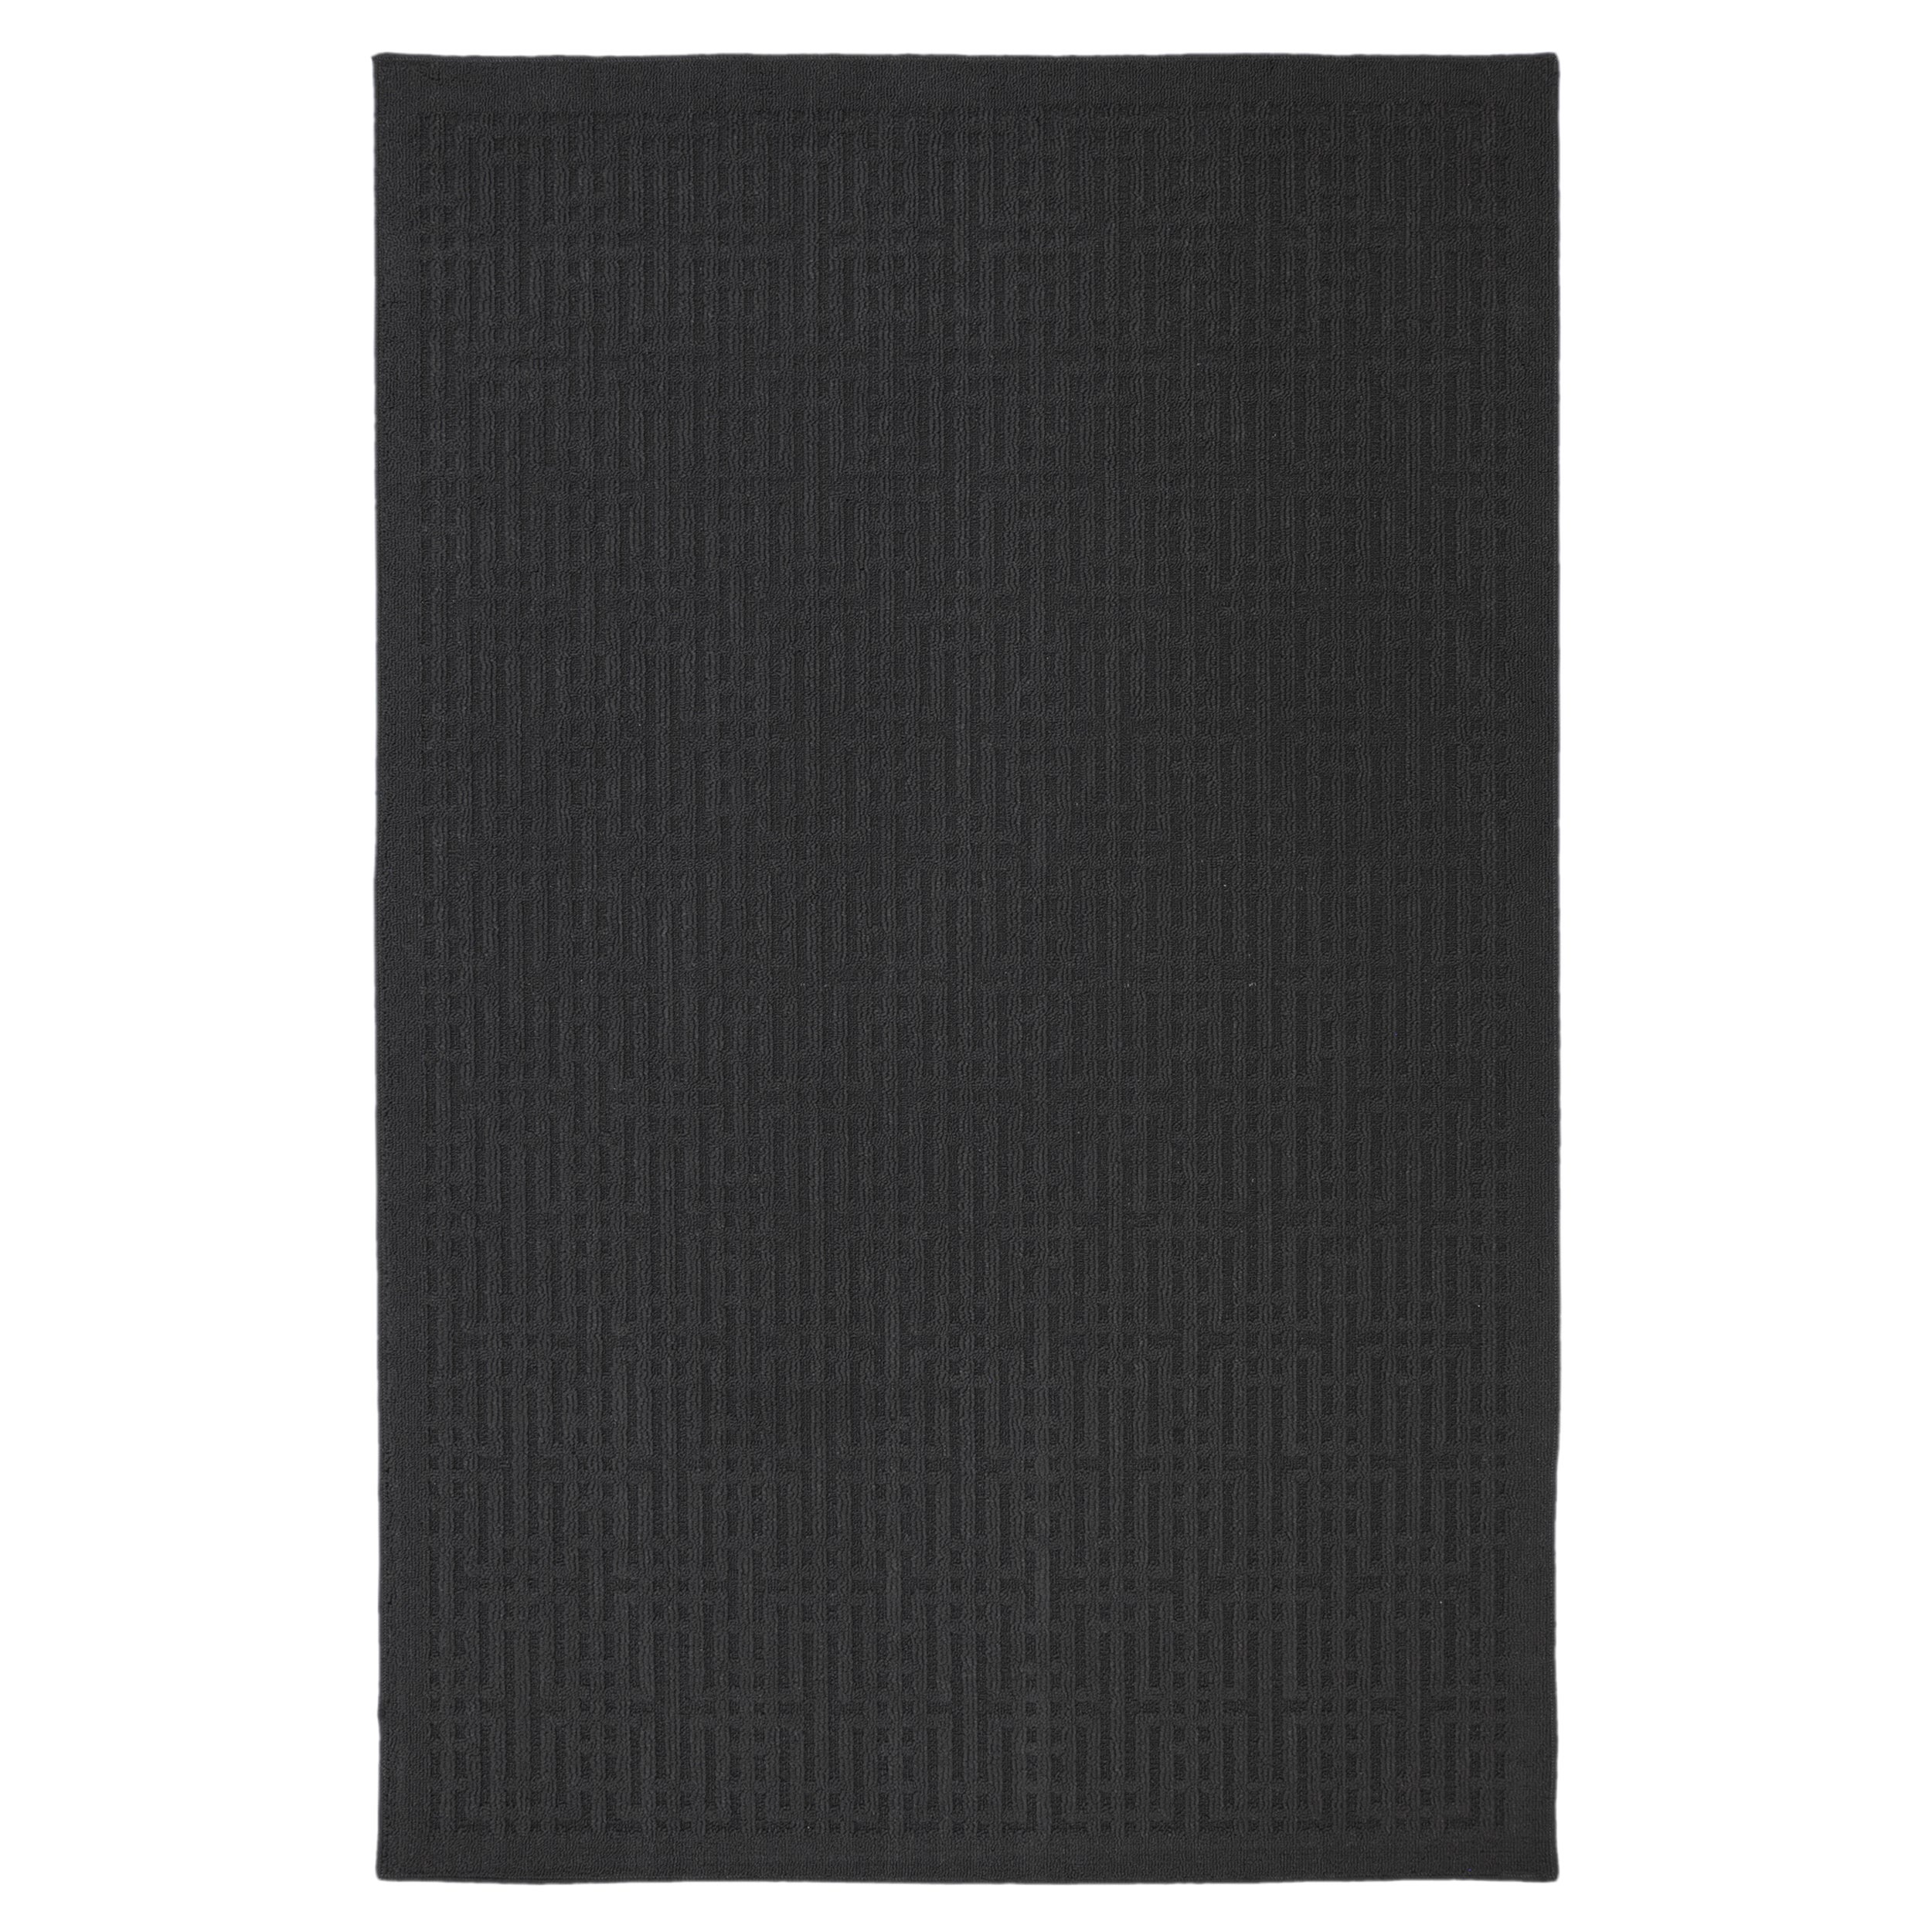 Stacks Dark Charcoal Rug (1'8 x 2'10)